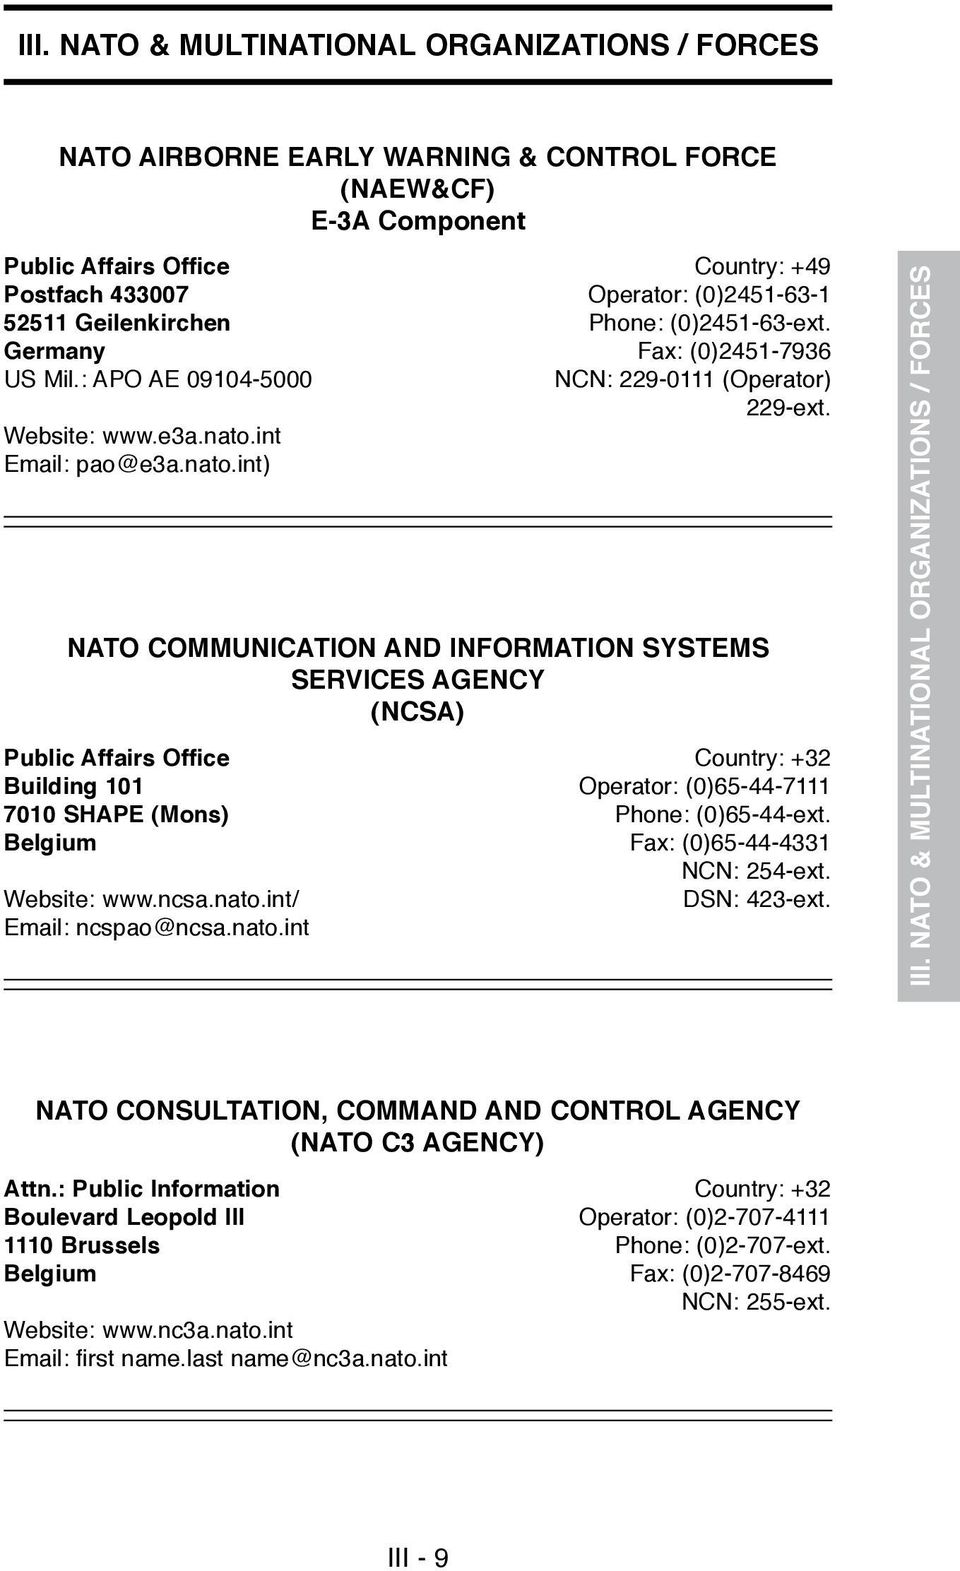 NATO COMMUNICATION AND INFORMATION SYSTEMS SERVICES AGENCY (NCSA) Public Affairs Office Country: +32 Building 101 Operator: (0)65-44-7111 7010 SHAPE (Mons) Phone: (0)65-44-ext.